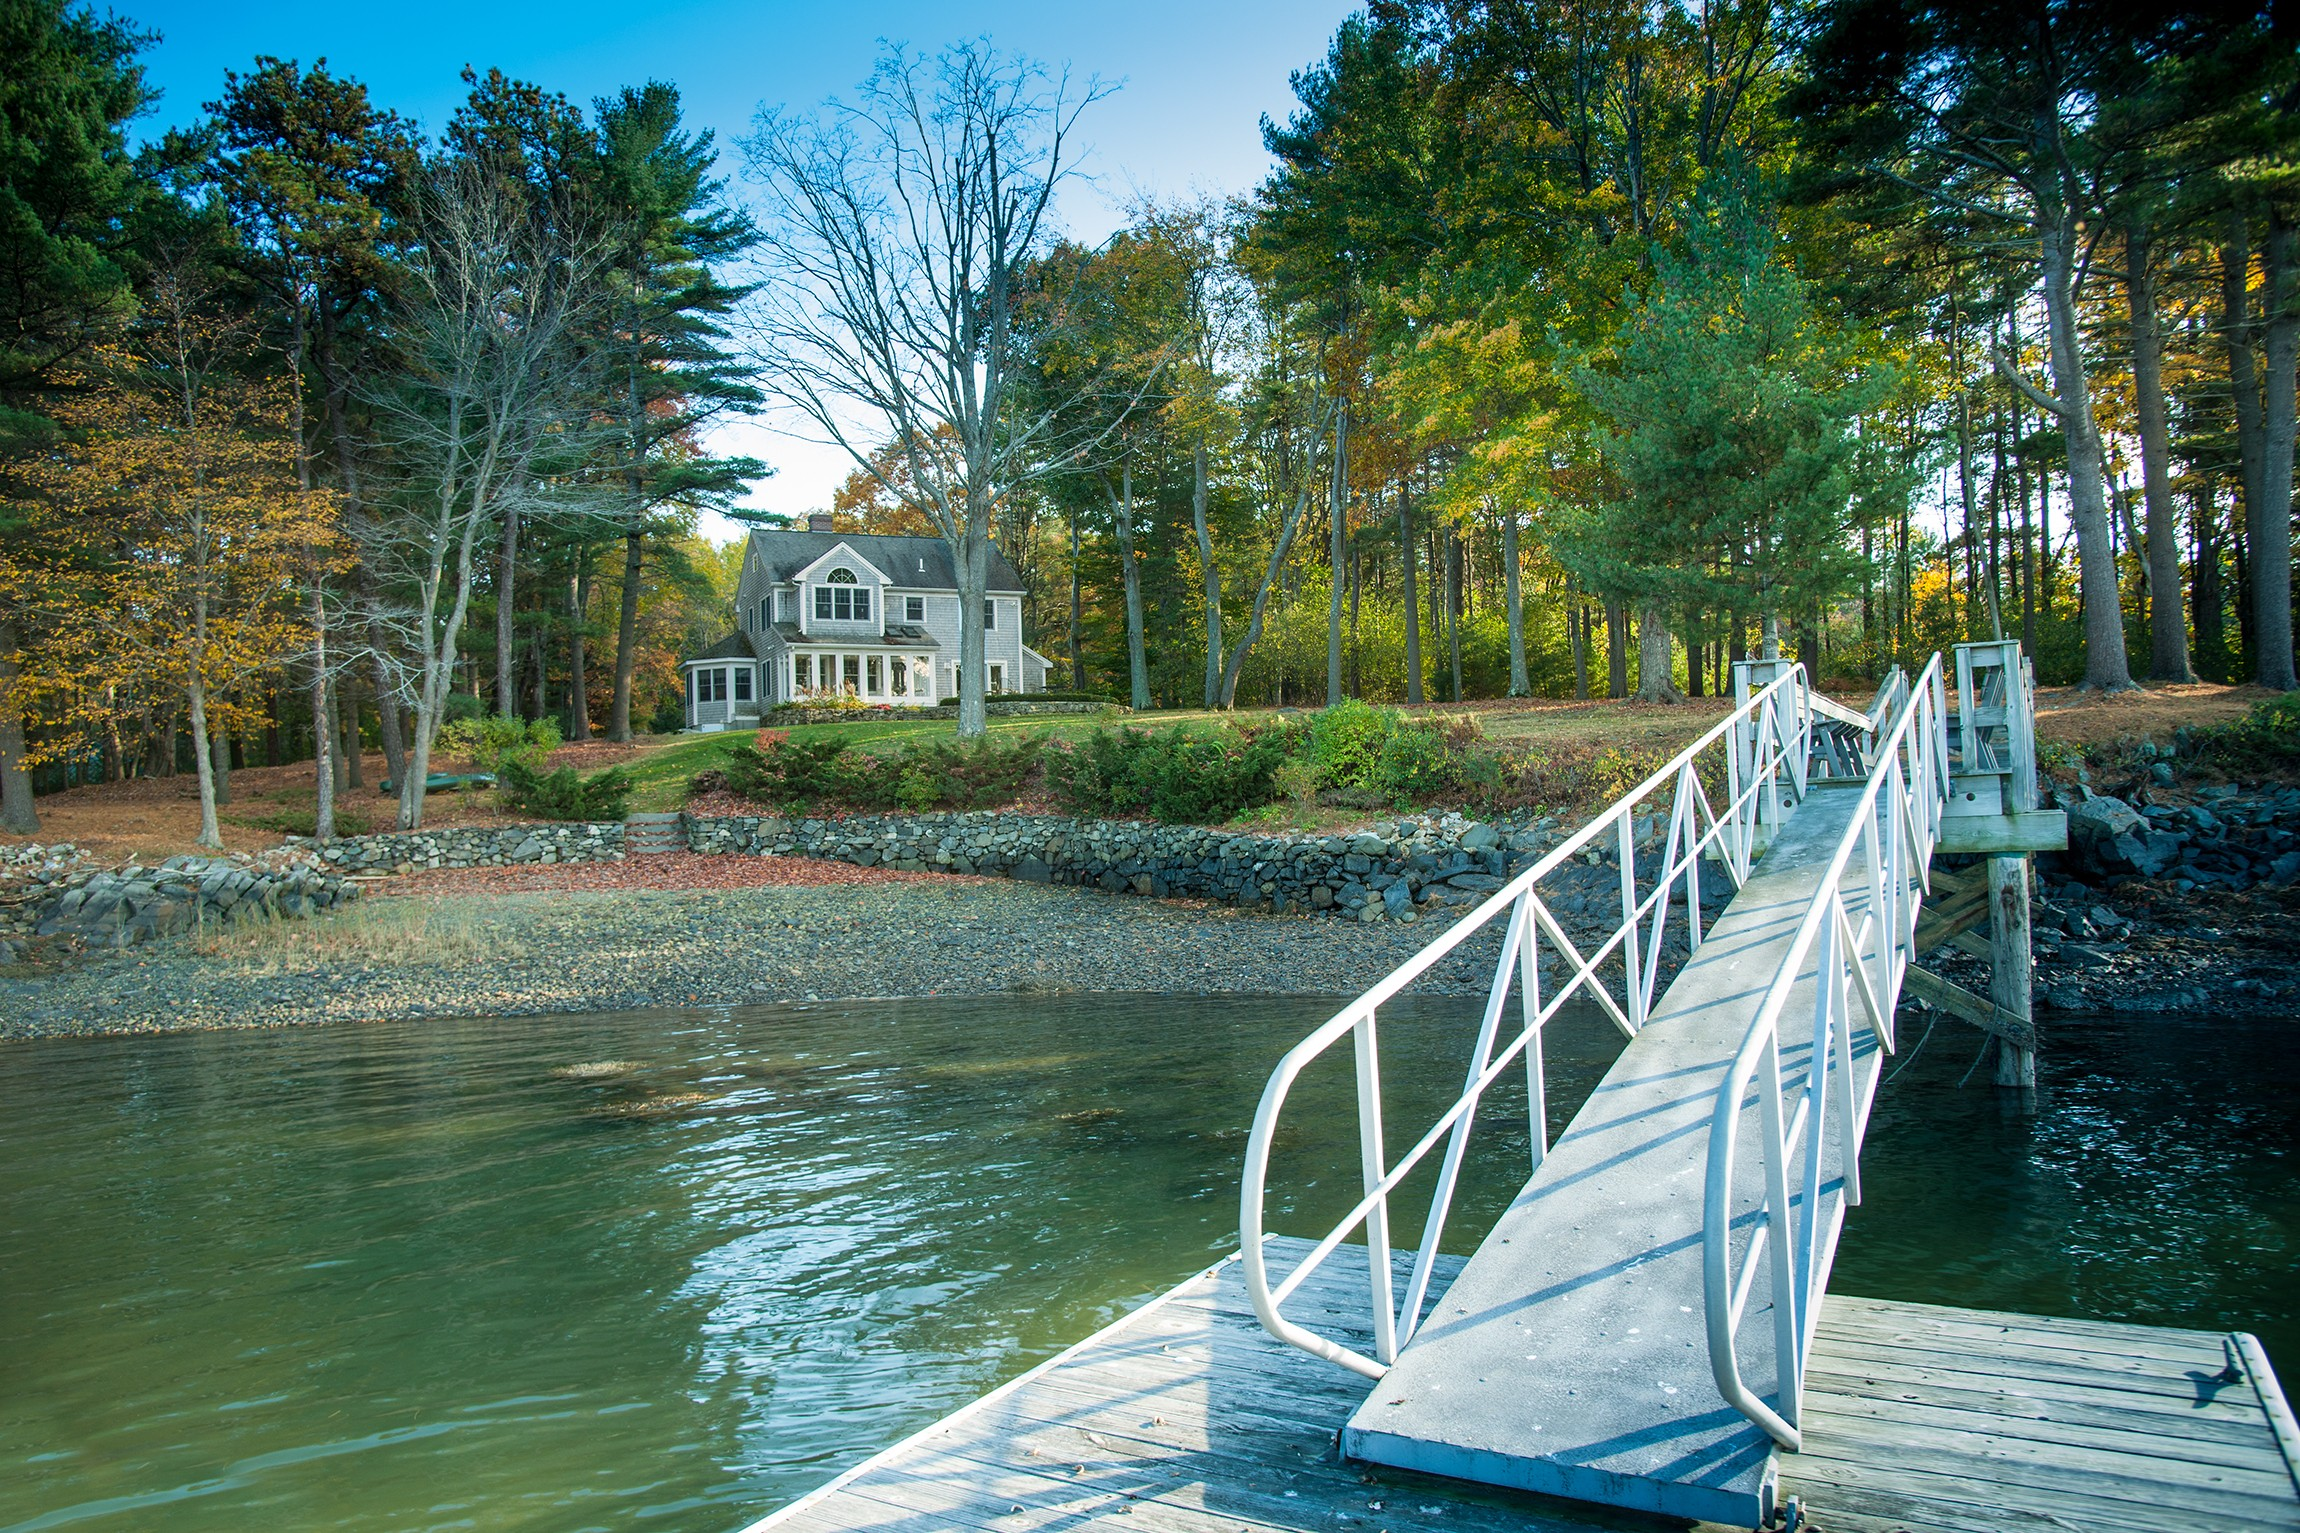 Single Family Home for Sale at Unique Kittery Point Waterfront Home on Spruce Creek 21 Folcutt Road Kittery, Maine 03905 United States